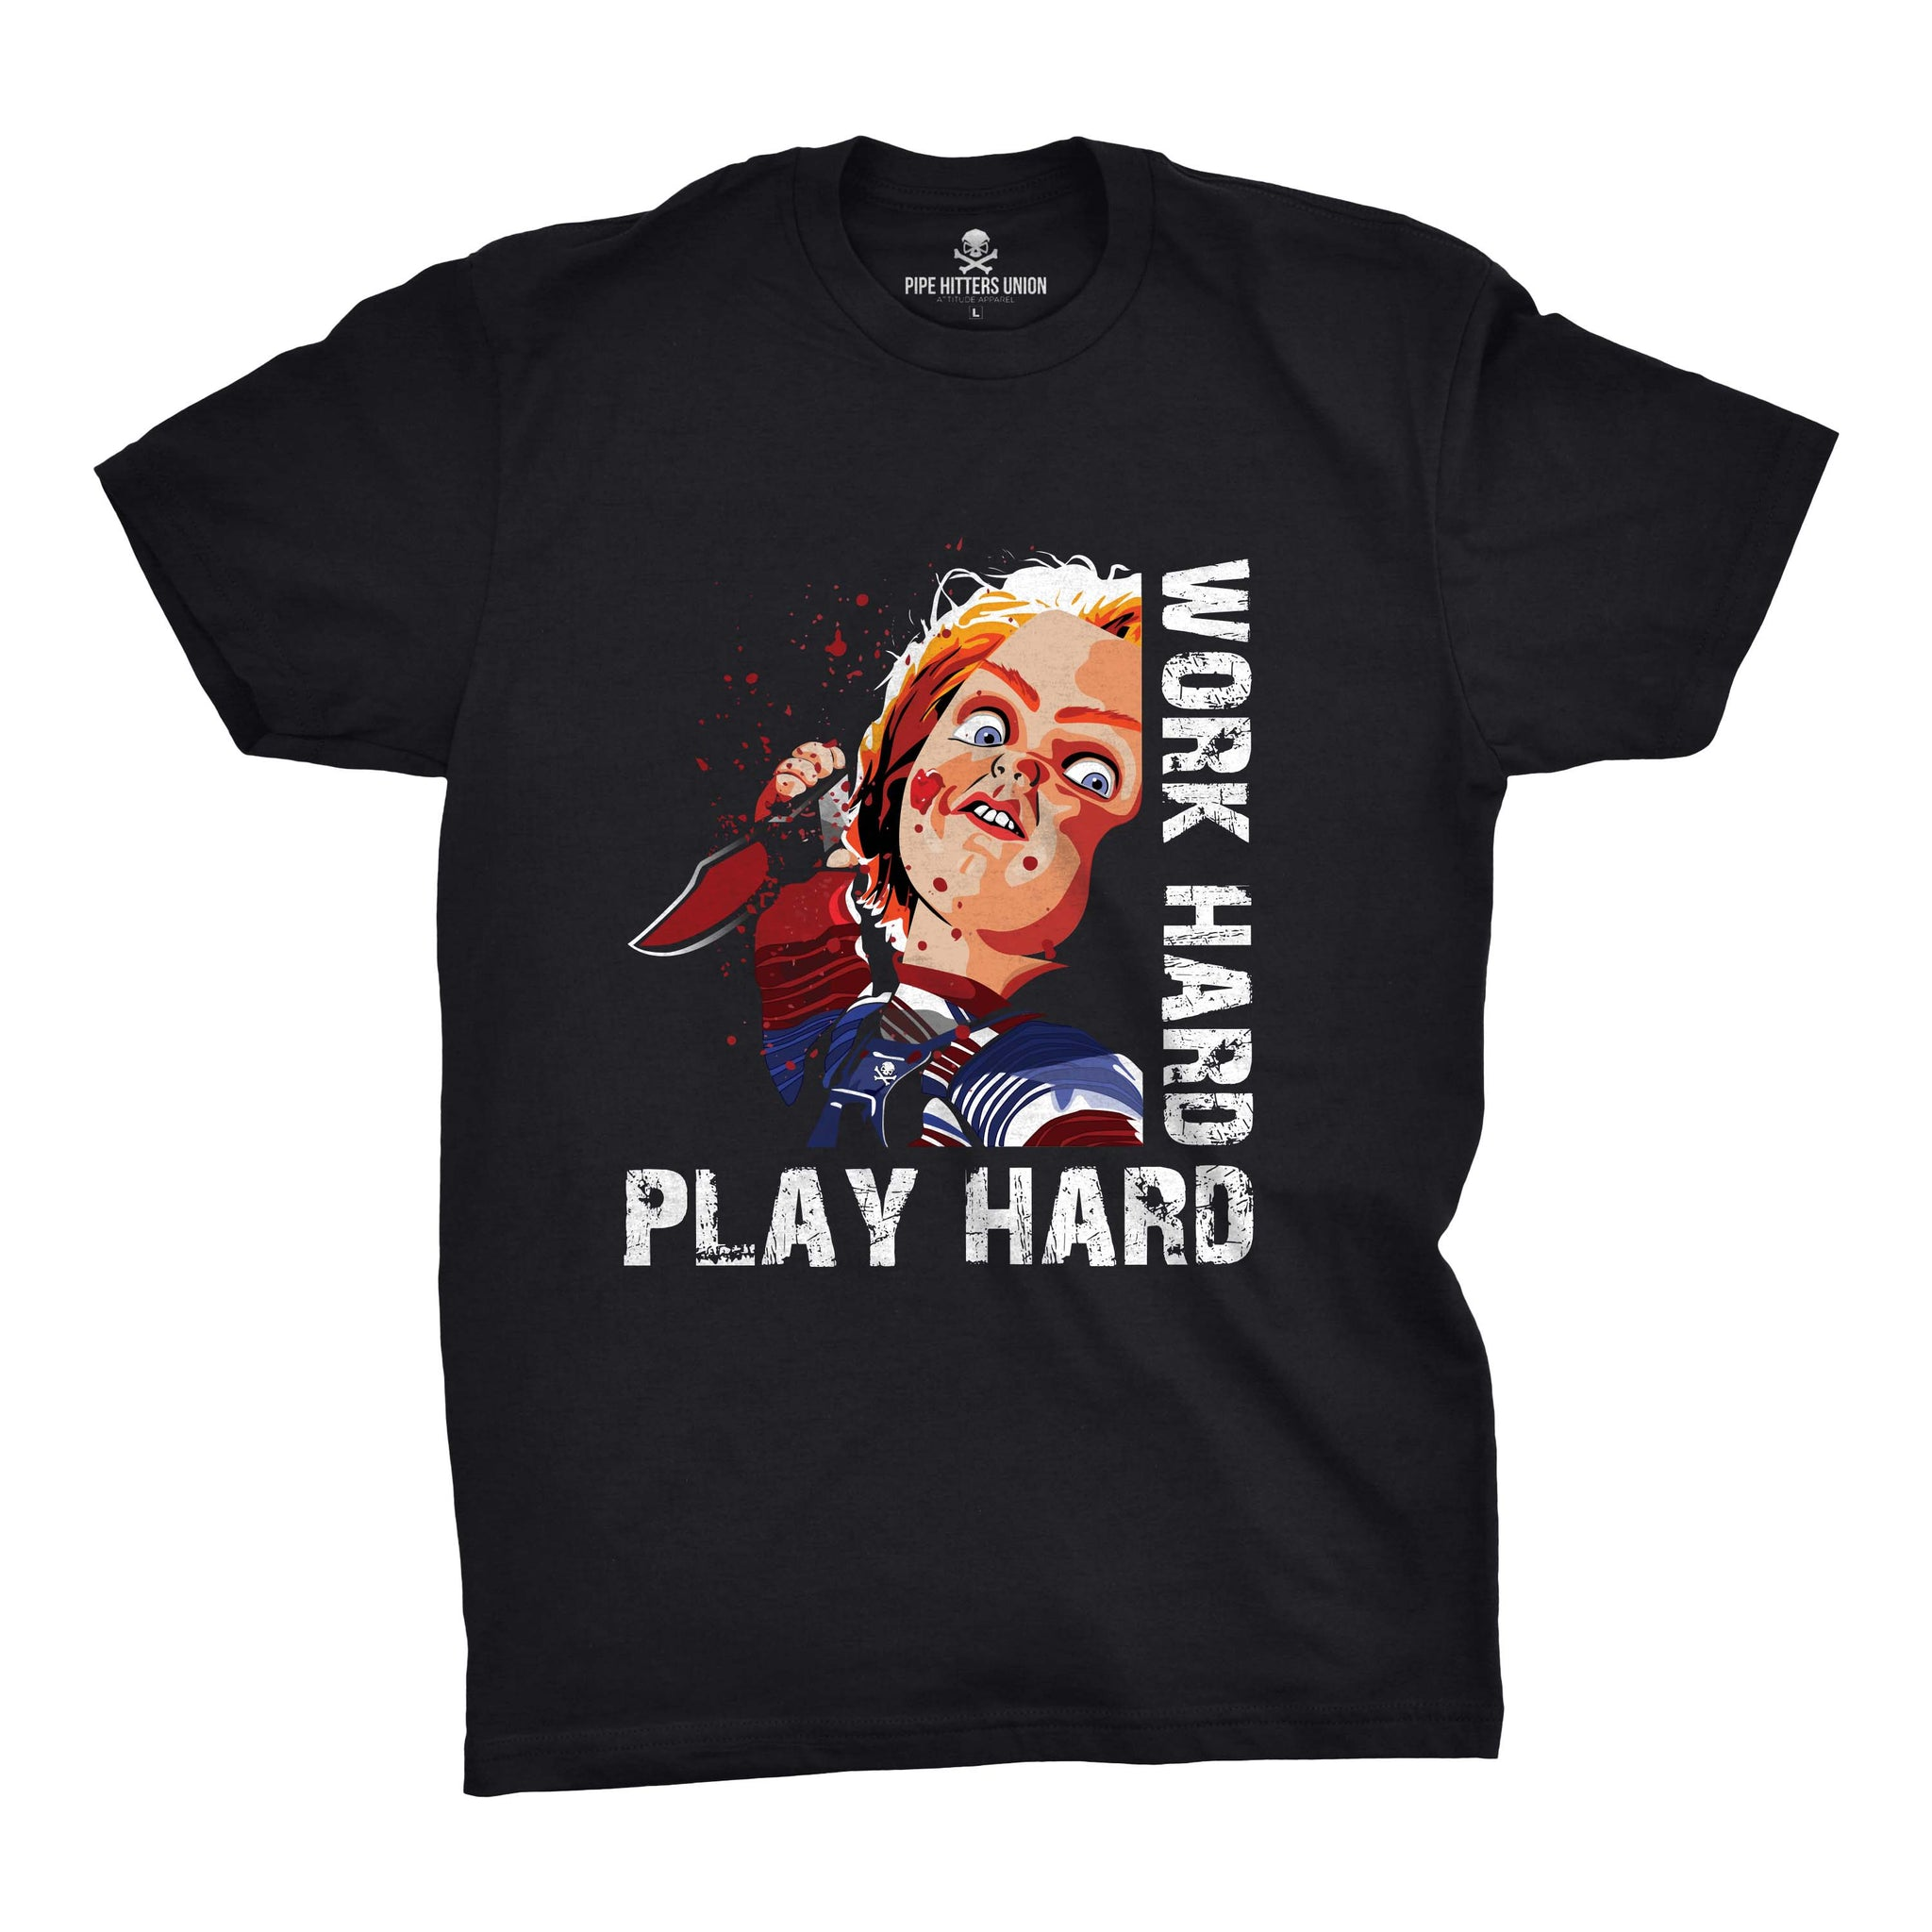 Work Hard - Play Hard - Black - T-Shirts - Pipe Hitters Union